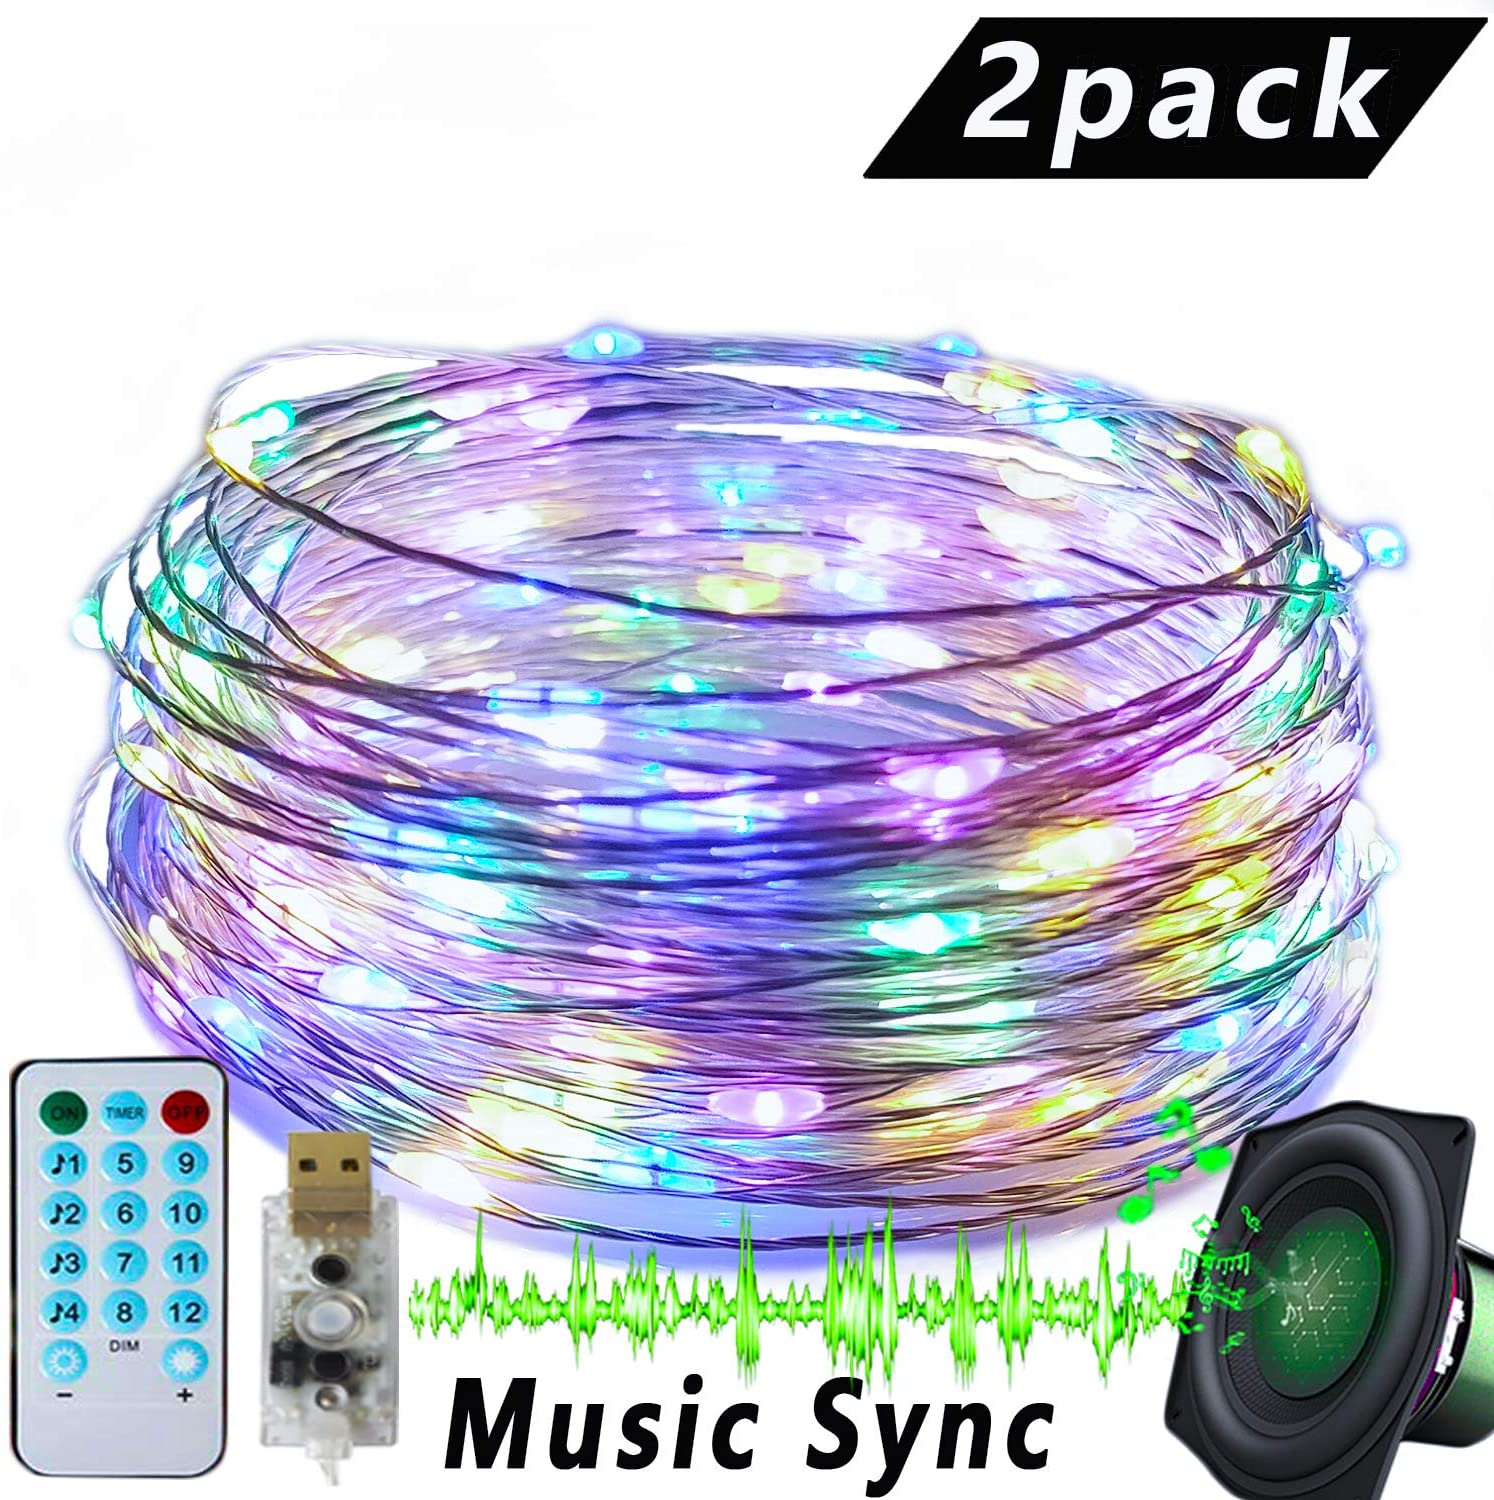 2 Pack Music Sync Starry Fairy Lights USB Powered 16.5 FT 50 LED 12 Modes with Remote Control Sound Activated Waterproof Copper Wire String Lights for Indoor Outdoor Ambiance Rope Light Multicolor